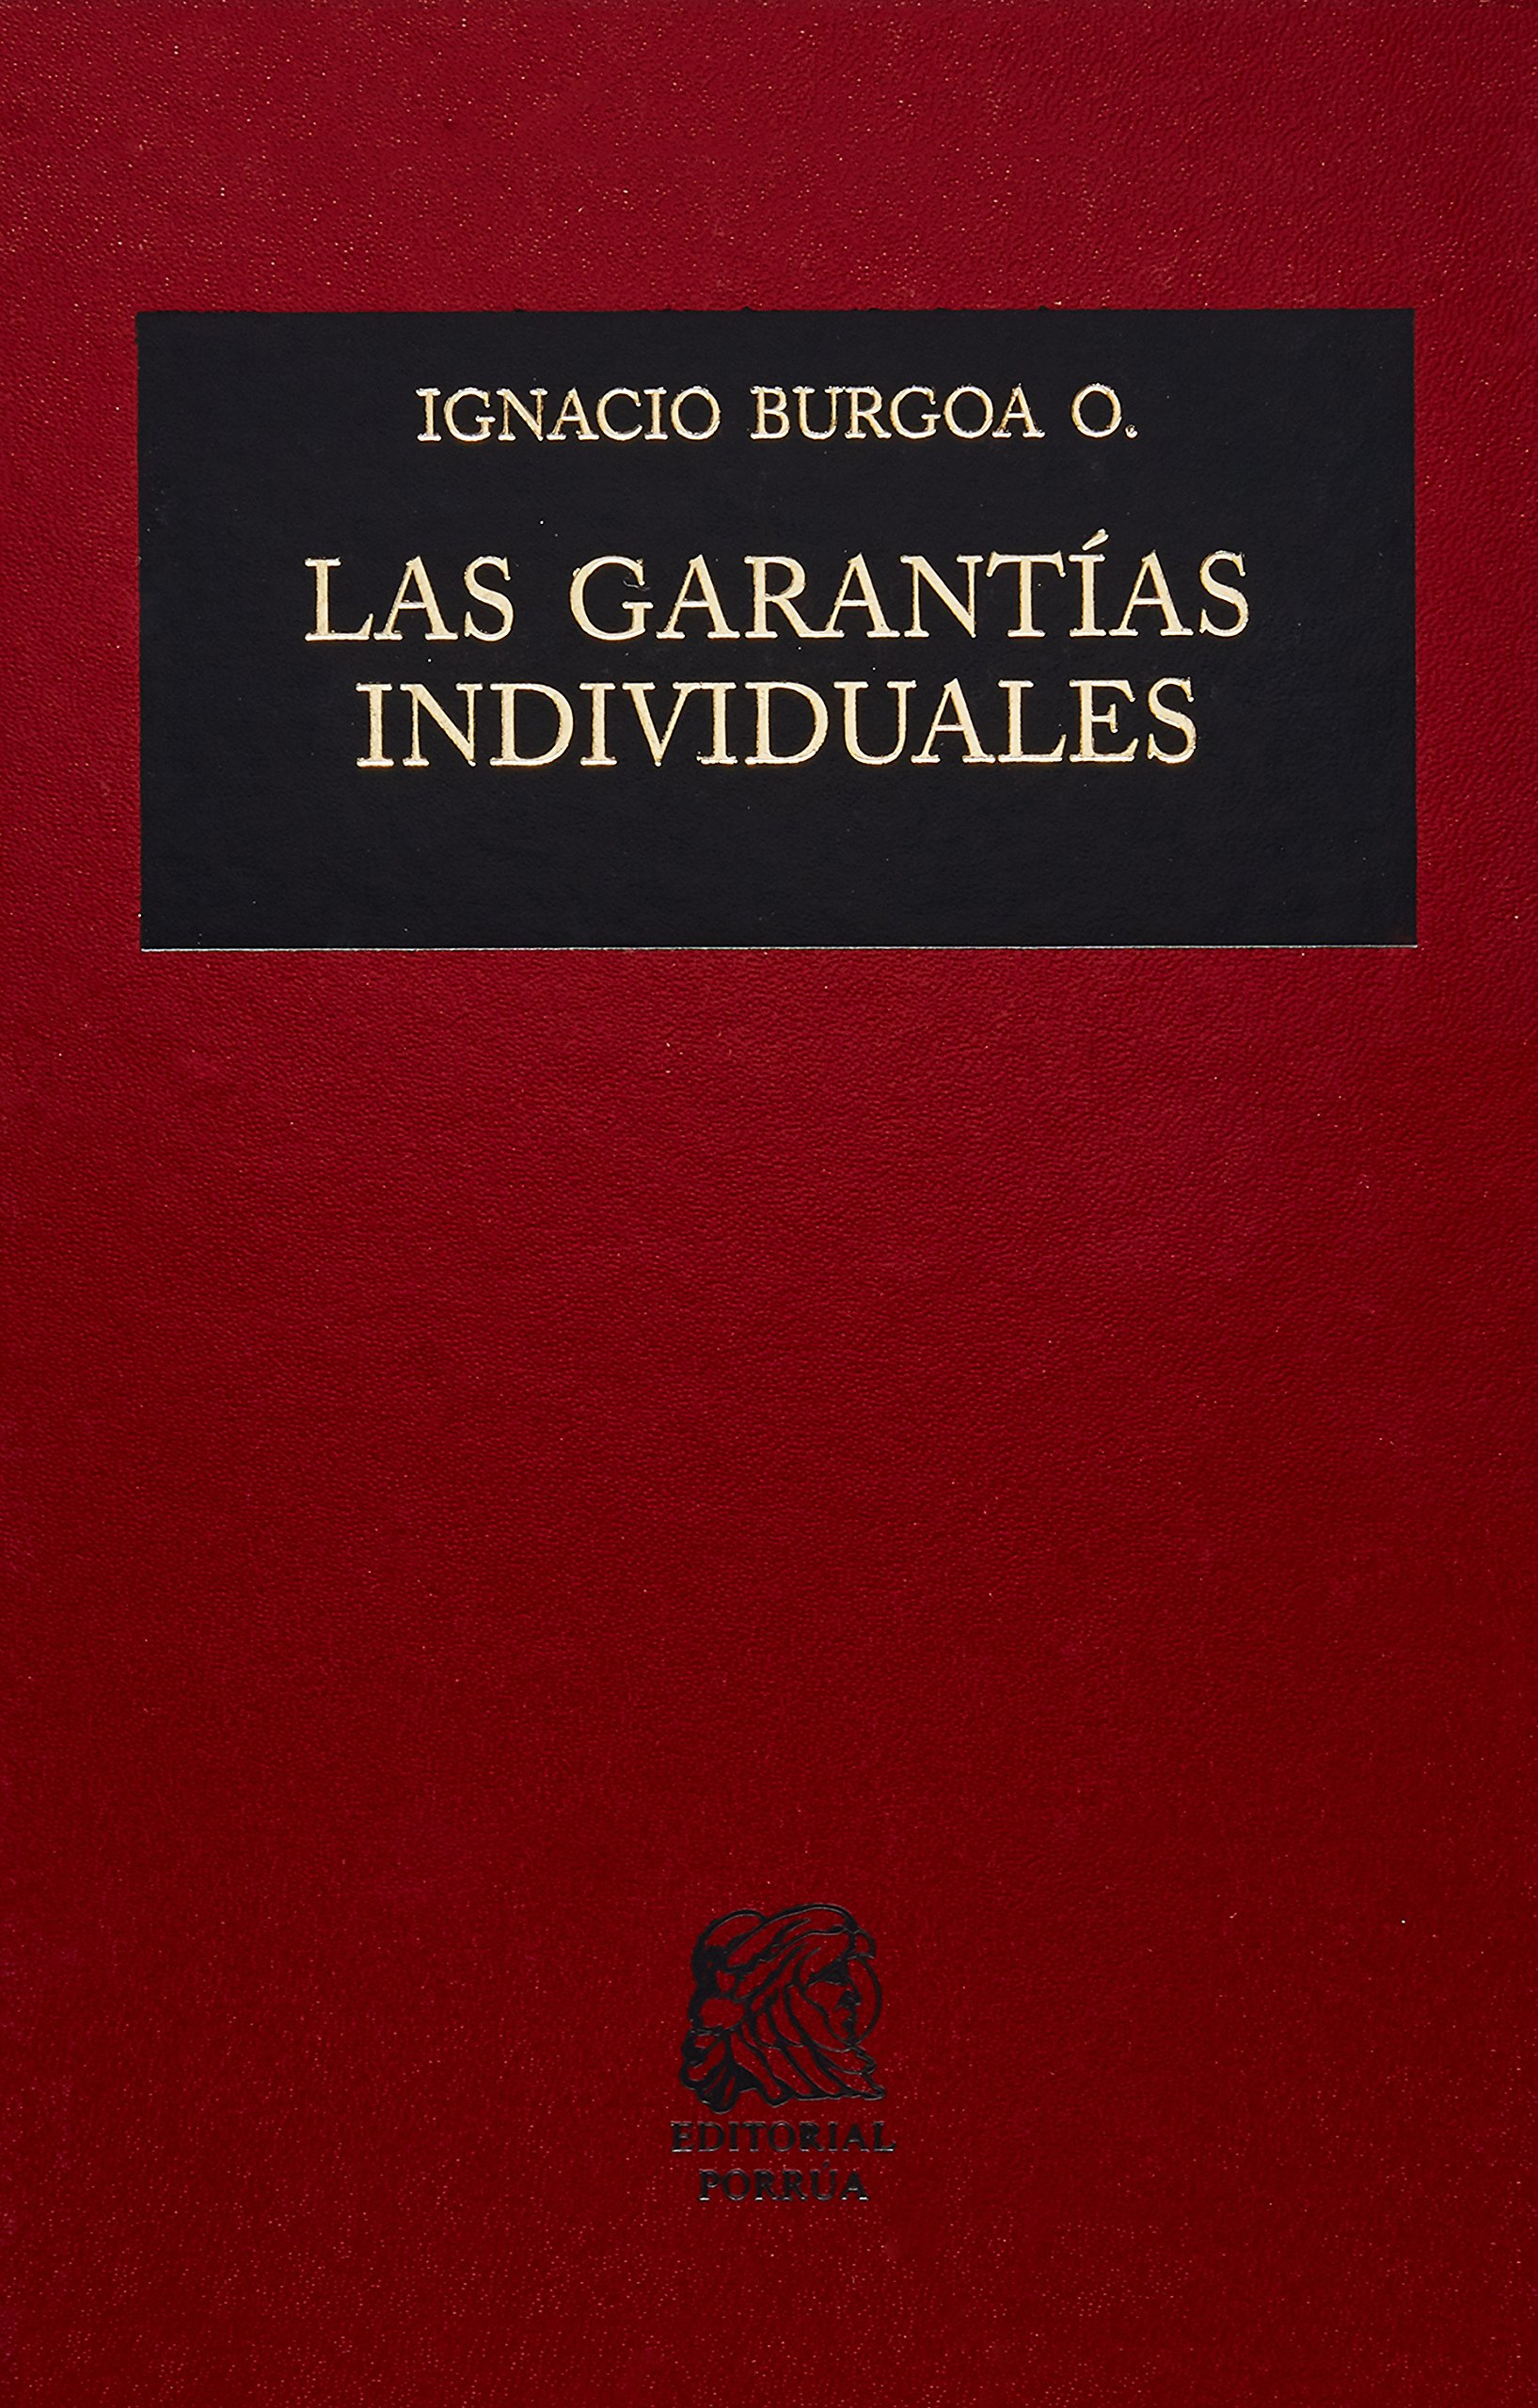 garantias individuales, las 39/e: Amazon.es: Libros